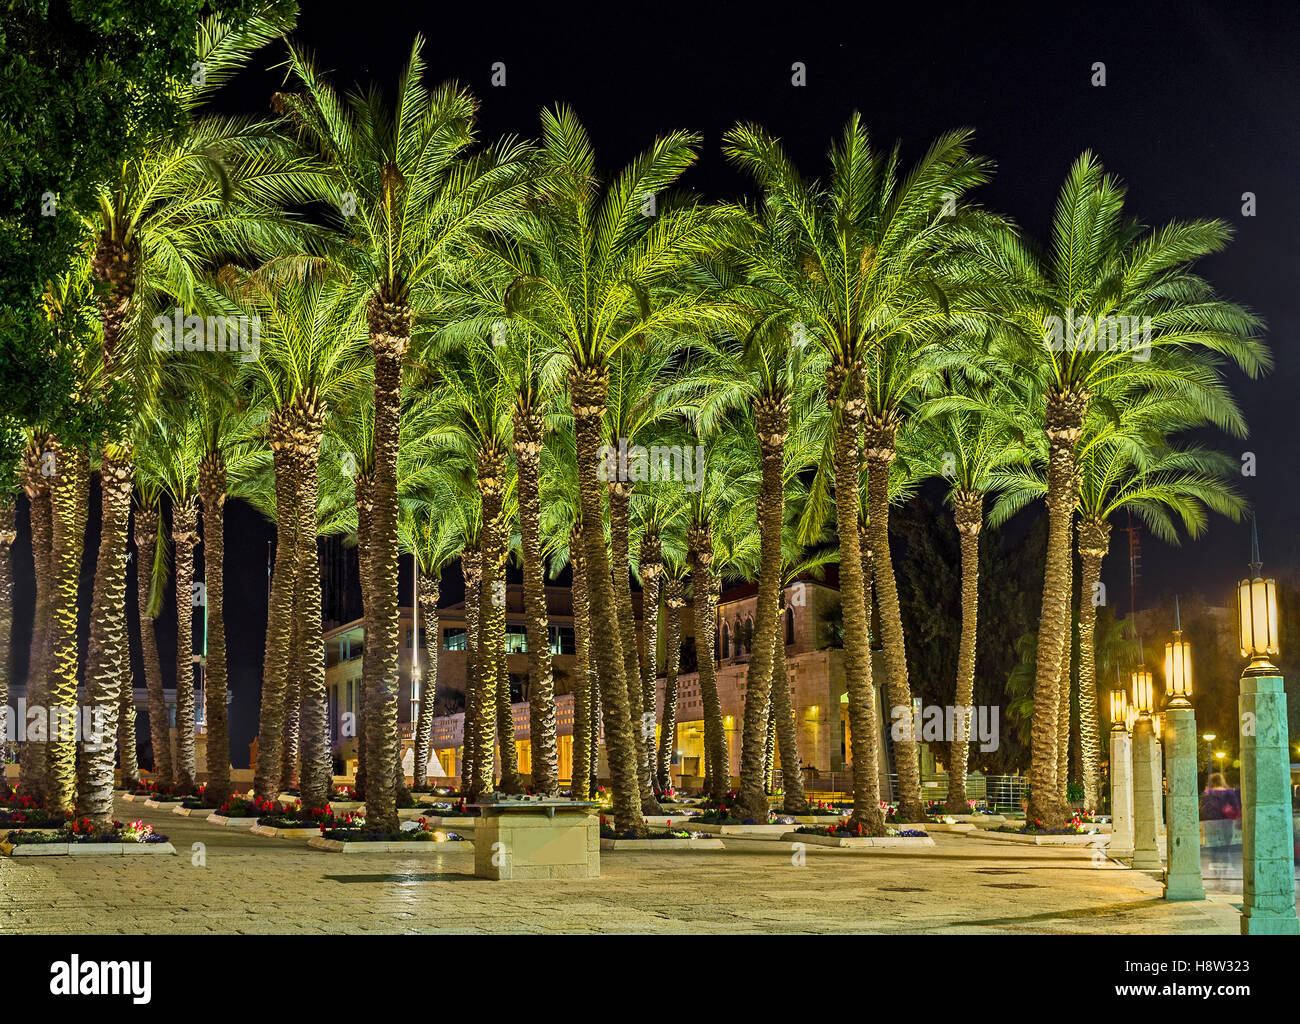 Israel Palm Trees Stock Photos & Israel Palm Trees Stock Images - Alamy